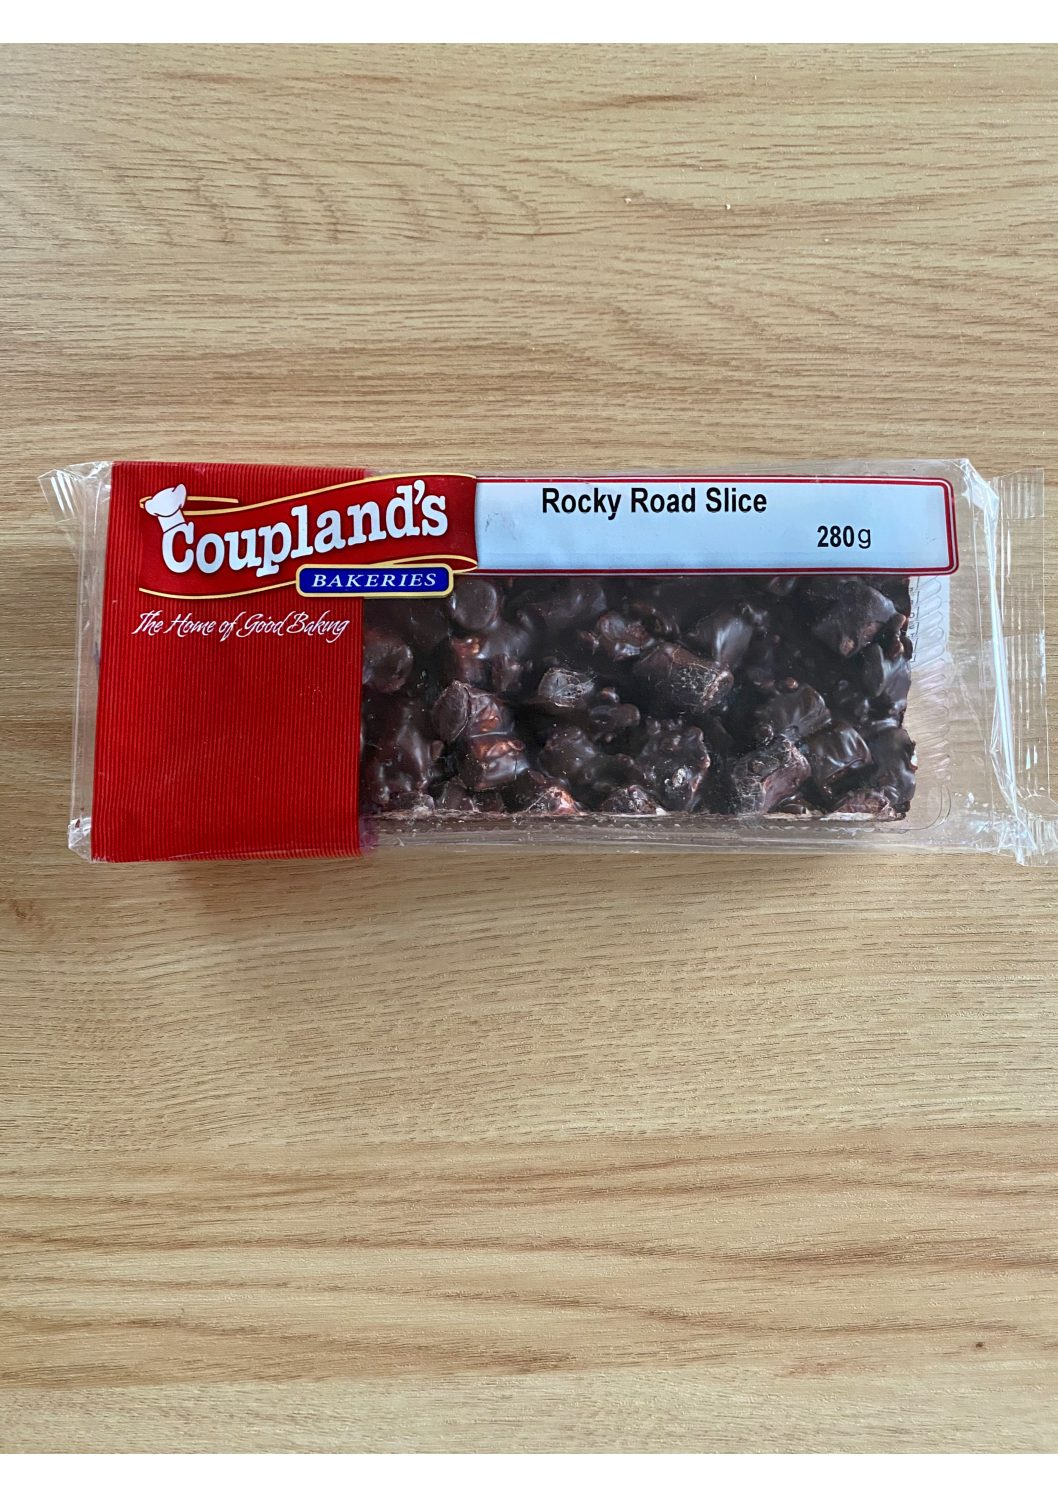 Couplands Rocky Road Slice 280g